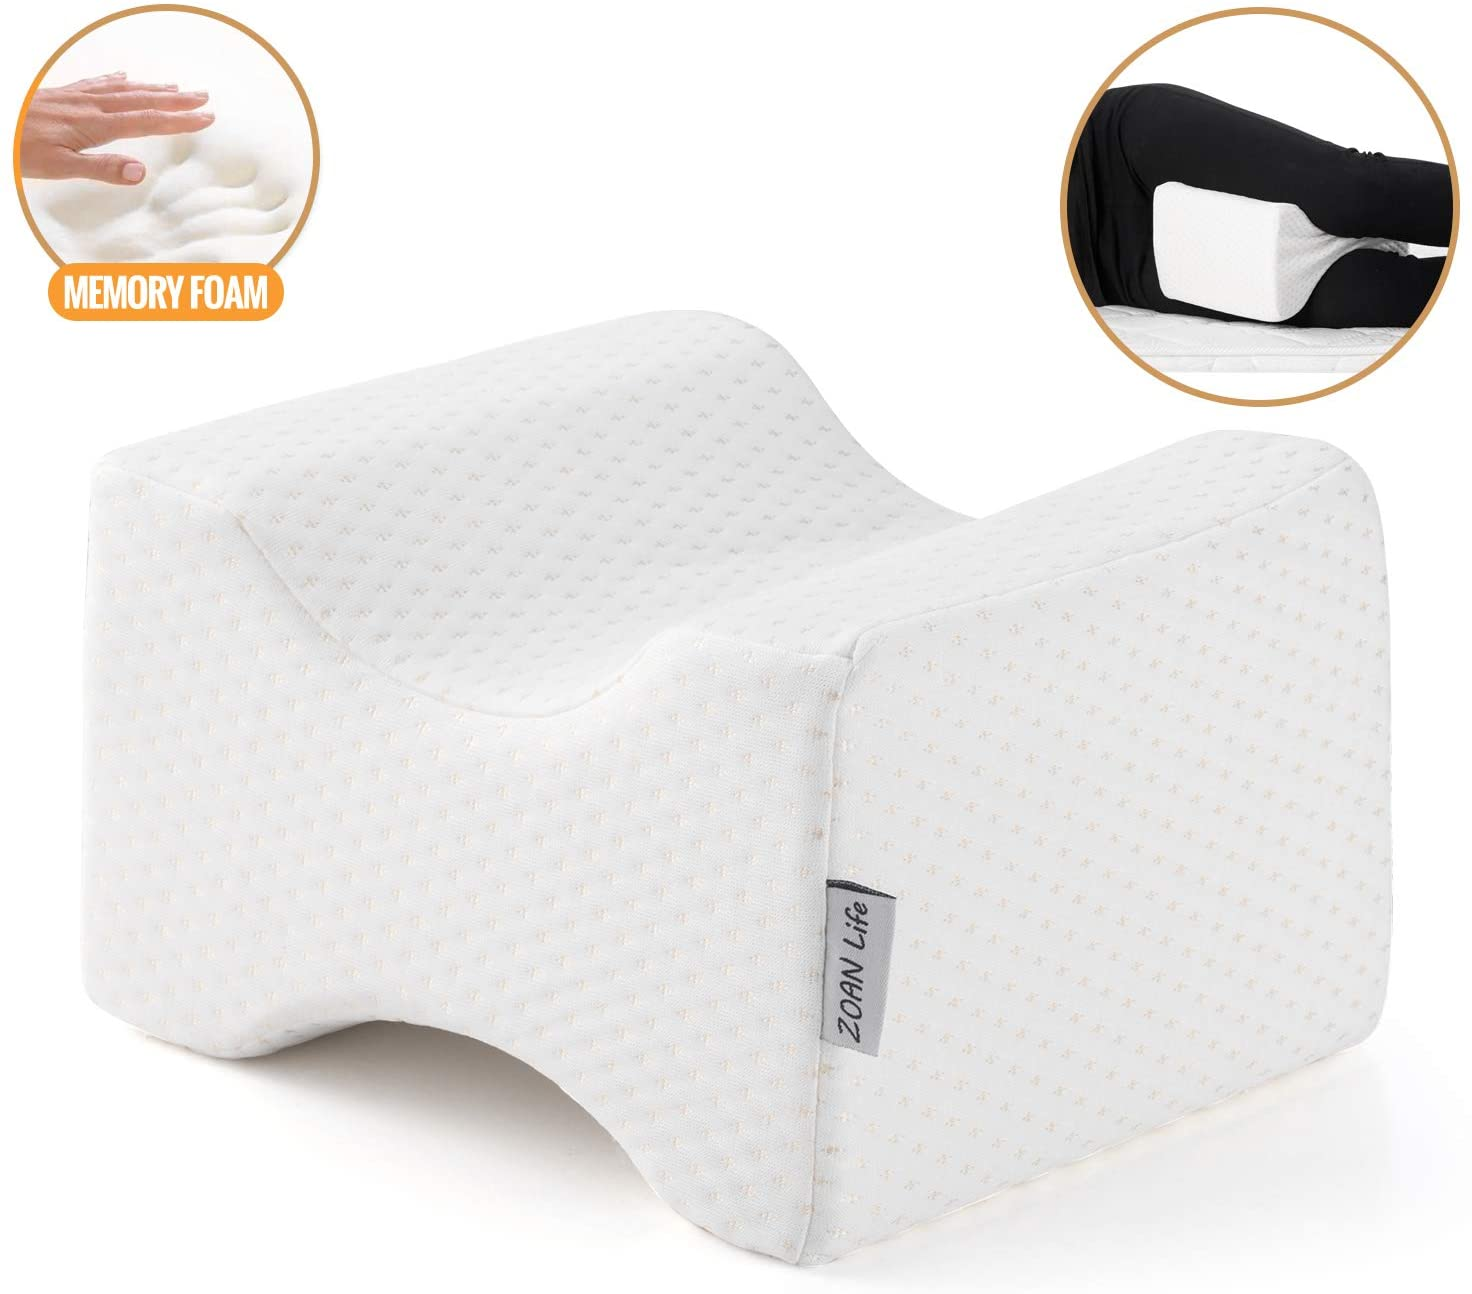 ZOAN Knee Pillows for Side Sleepers, Memory Foam Professional for Back and Hip Pain, Relieve Pregnancy Sciatic Pressure, Better Circulation with Upgrade Removable Cover